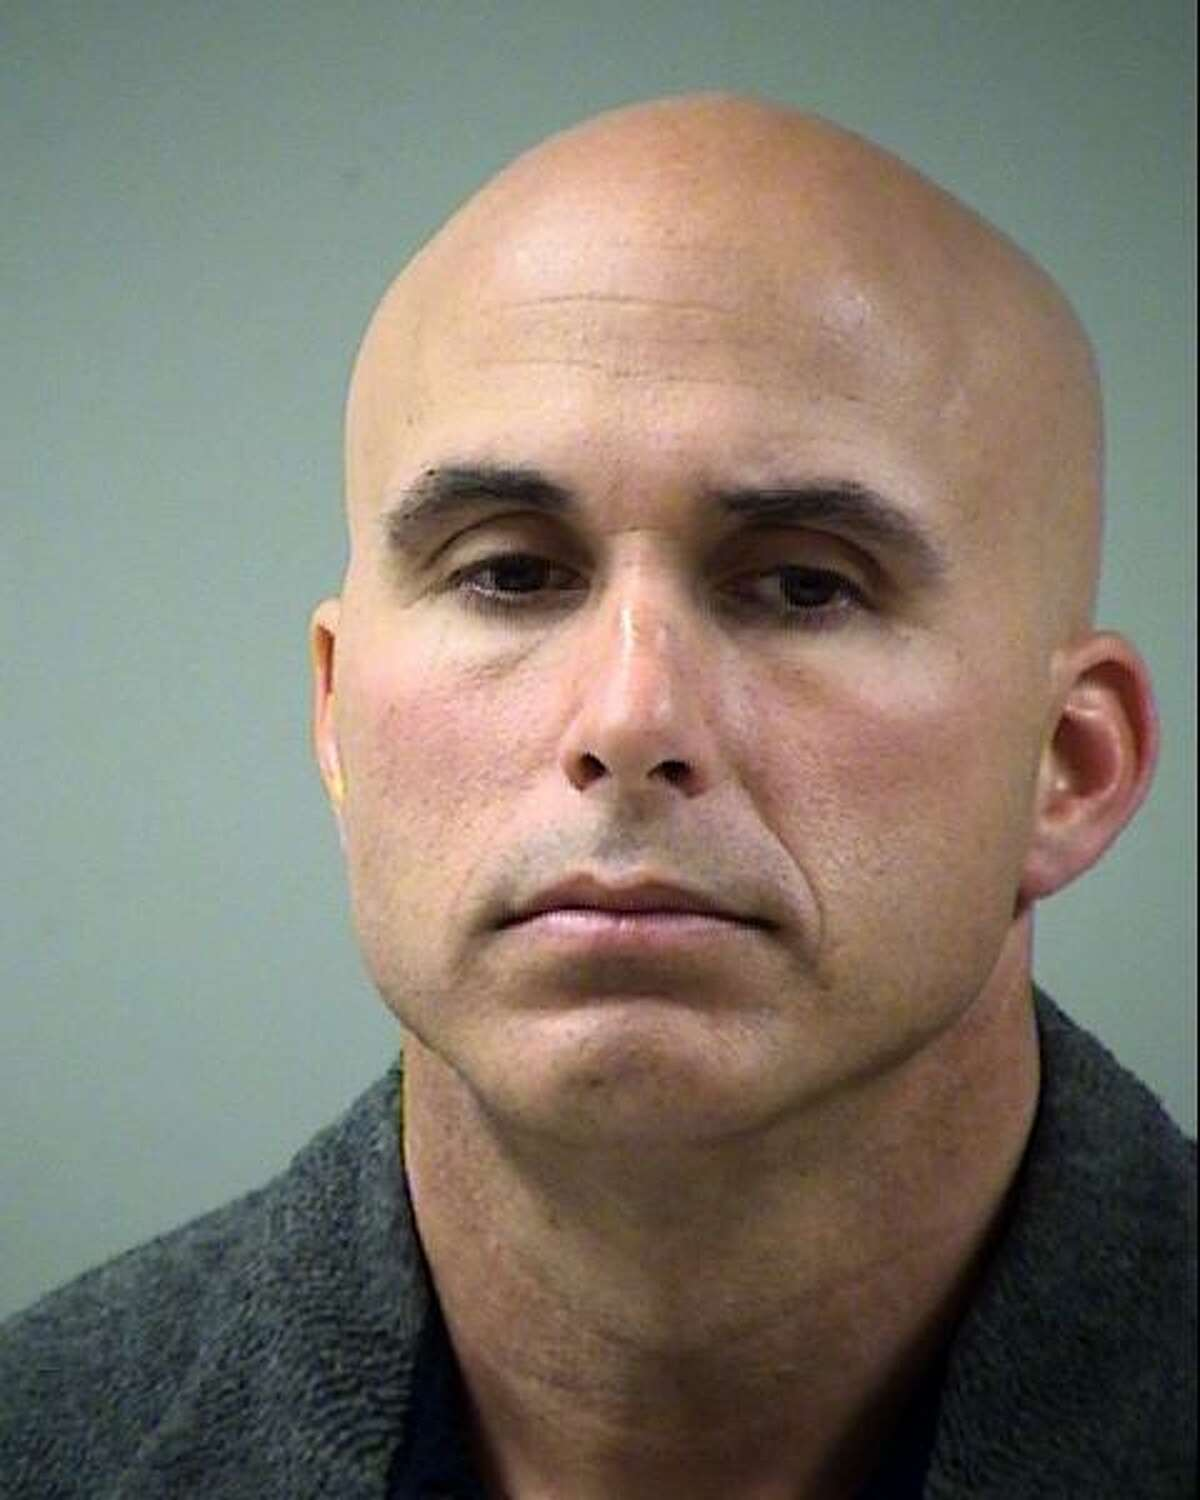 Bradley Croft, accused of defrauding the GI Bill program out of more than $1.2 million, could be out of jail as early as Wednesday after a federal judge granted him bond.